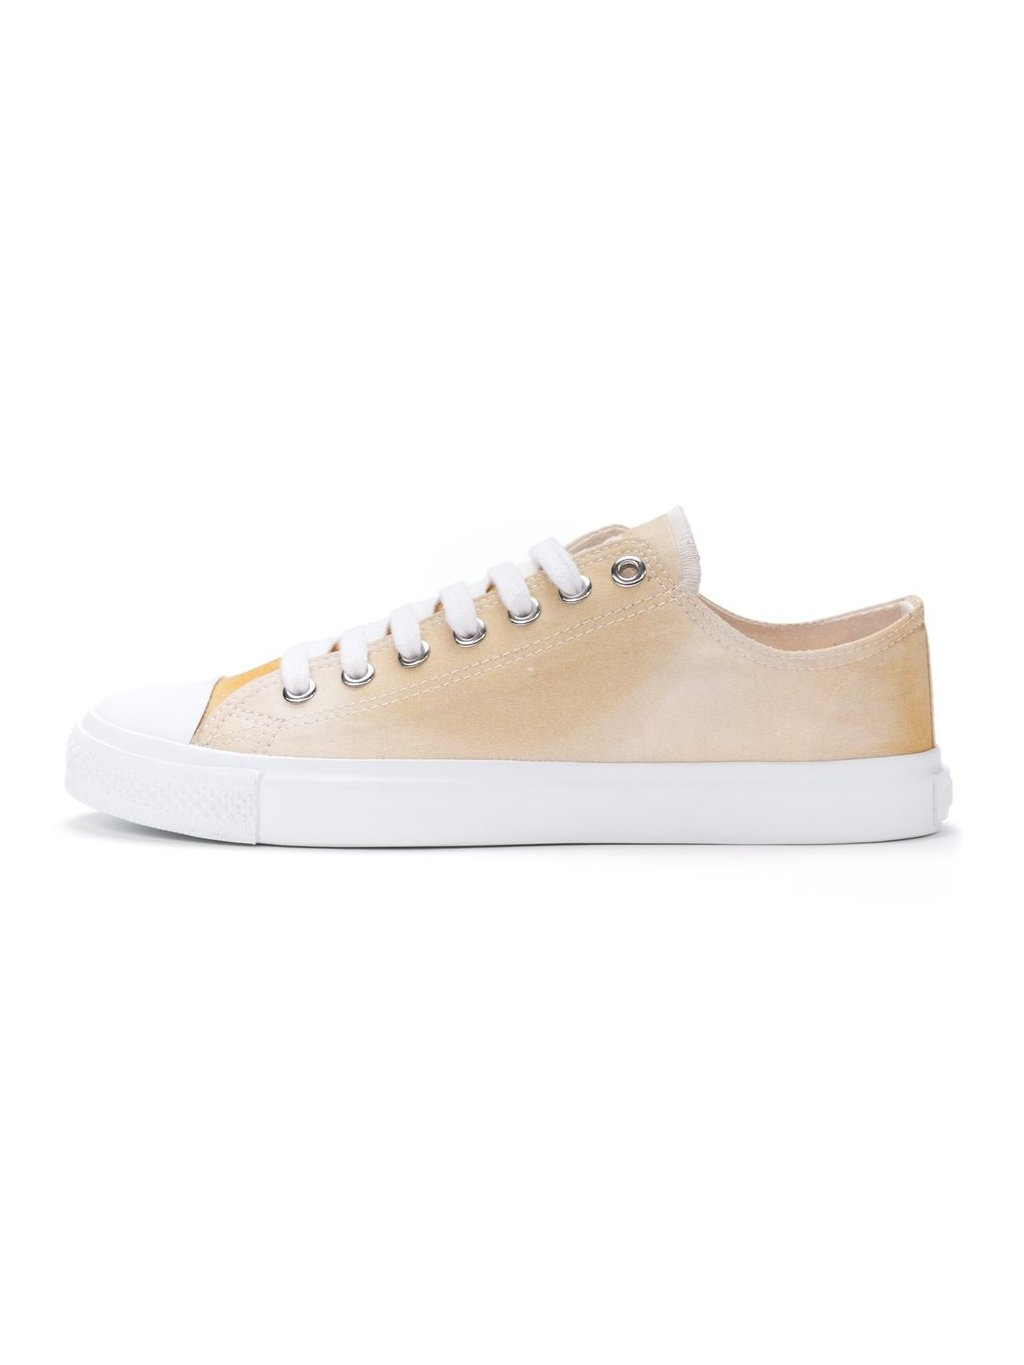 ethletic fair trainer white cap lo cut golden shin